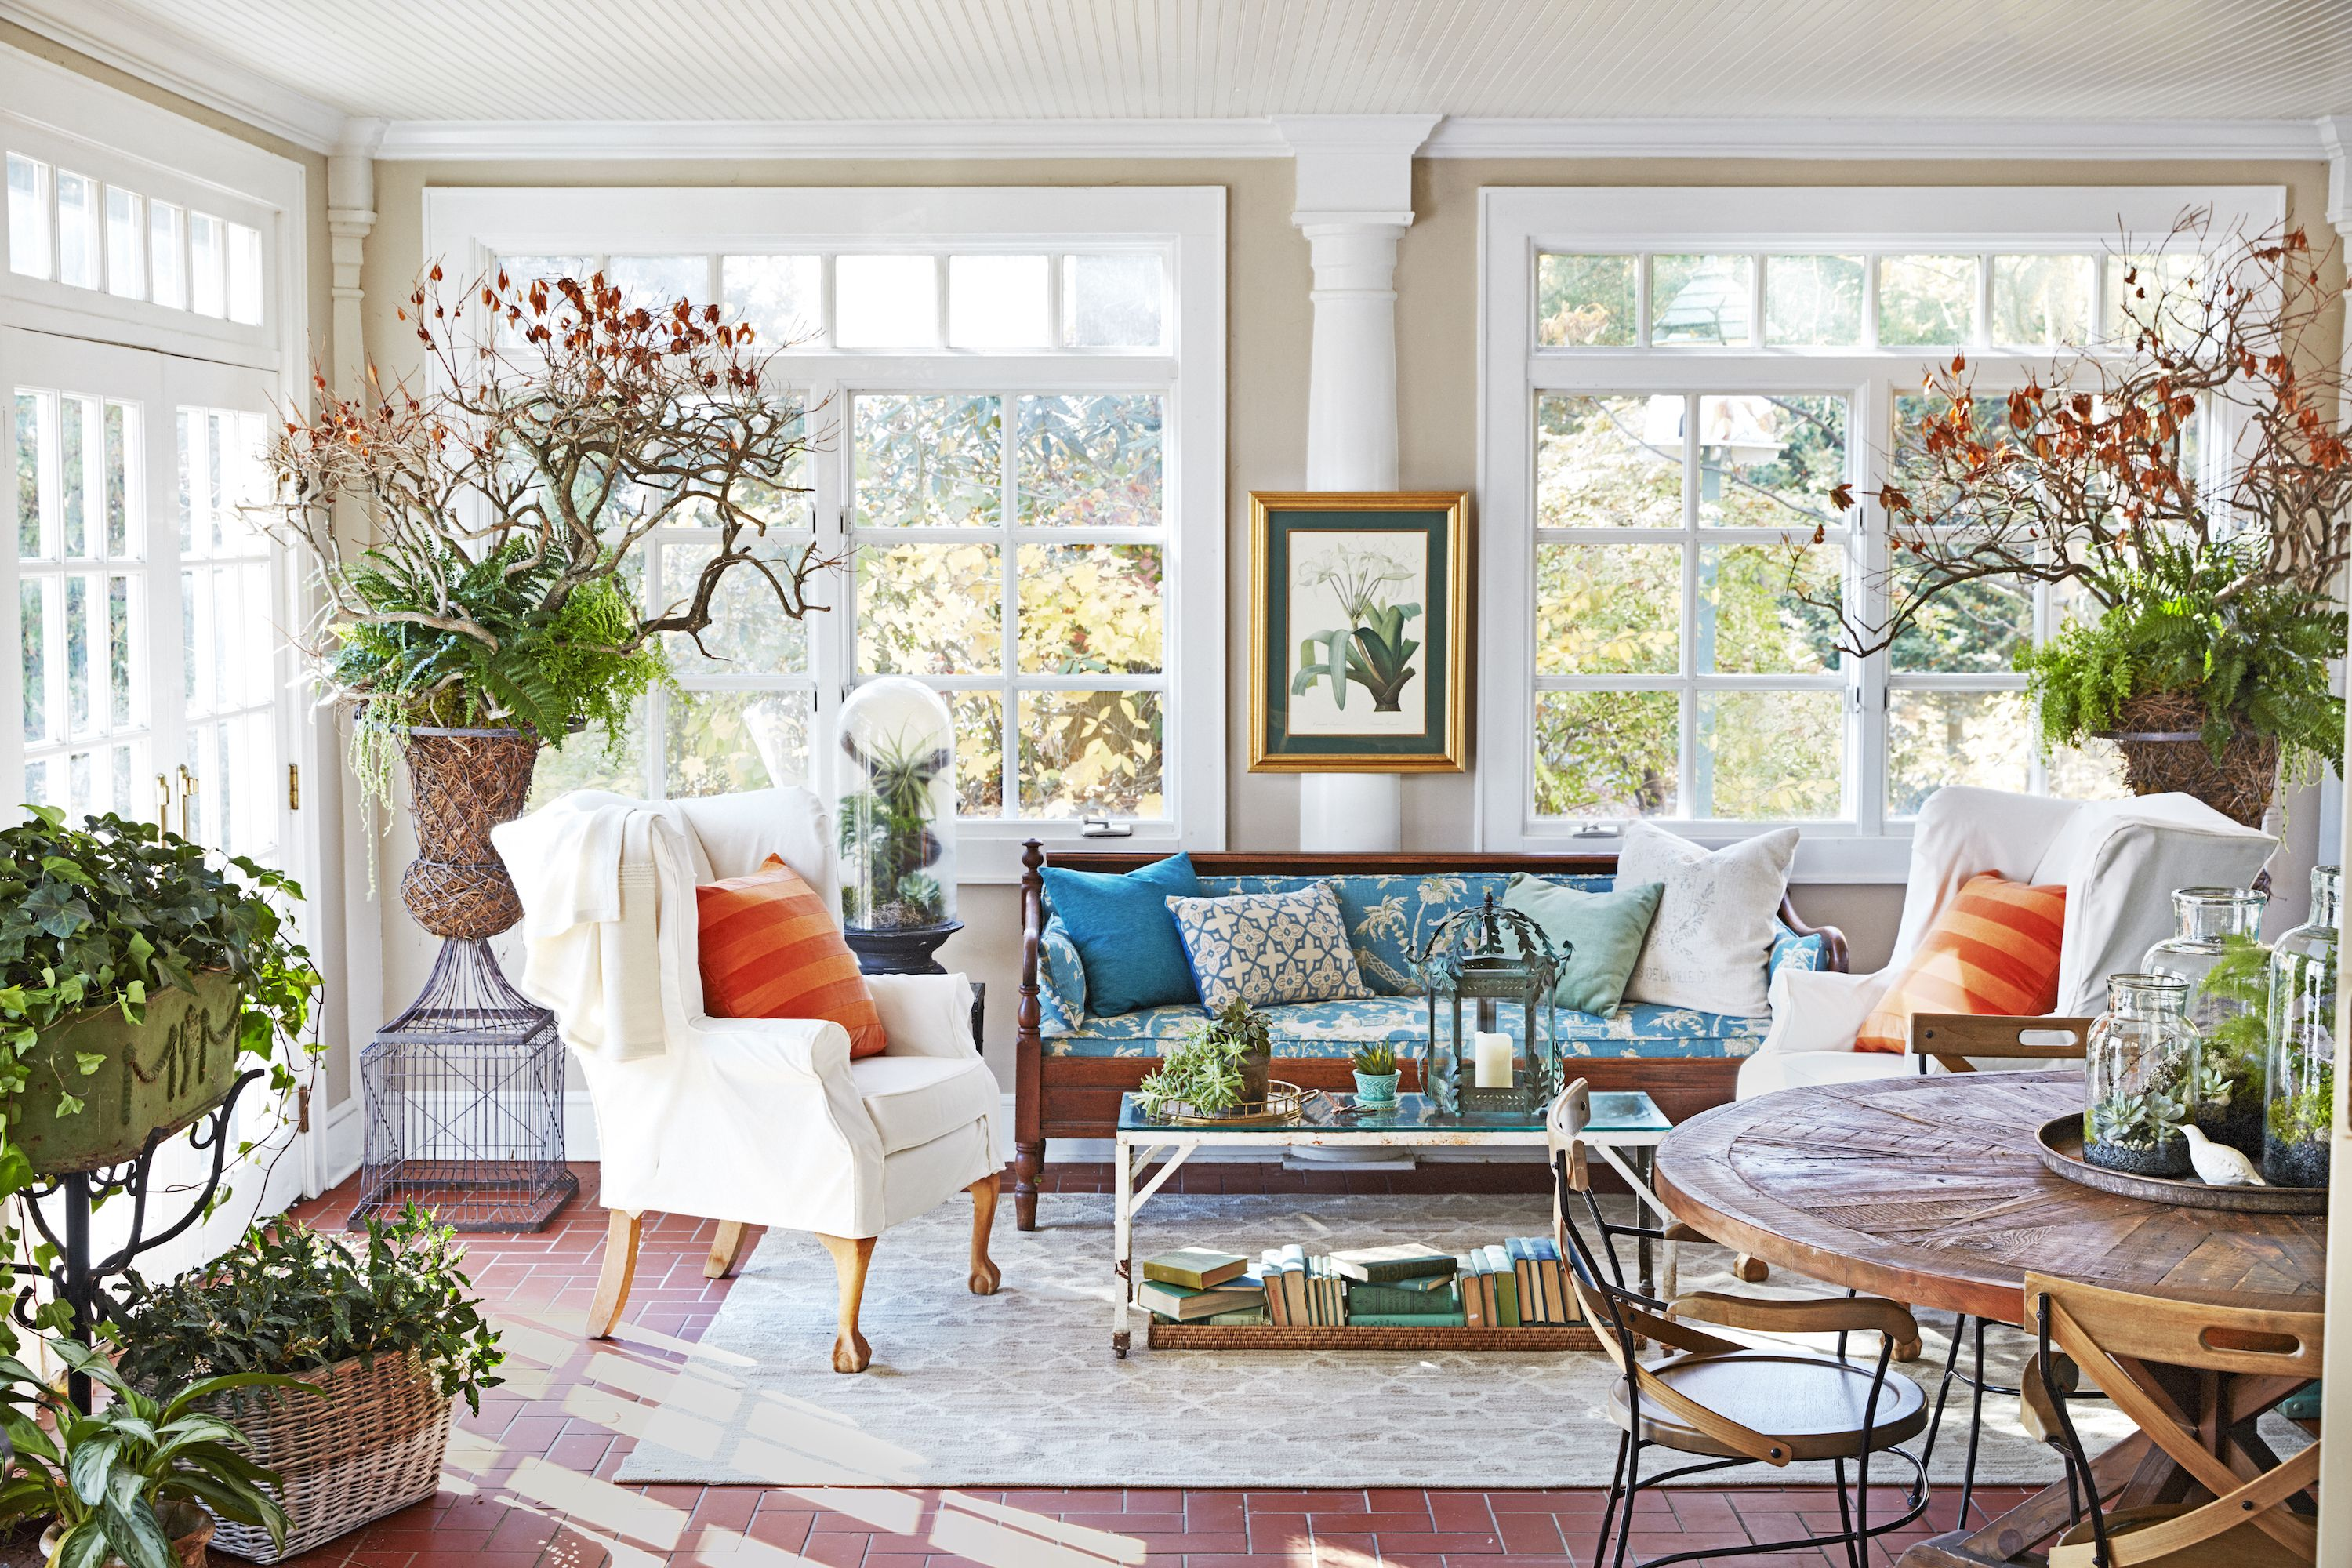 sunroom living room raymour and flanigan leather sets 10 decorating ideas best designs for sun rooms that ll brighten your space